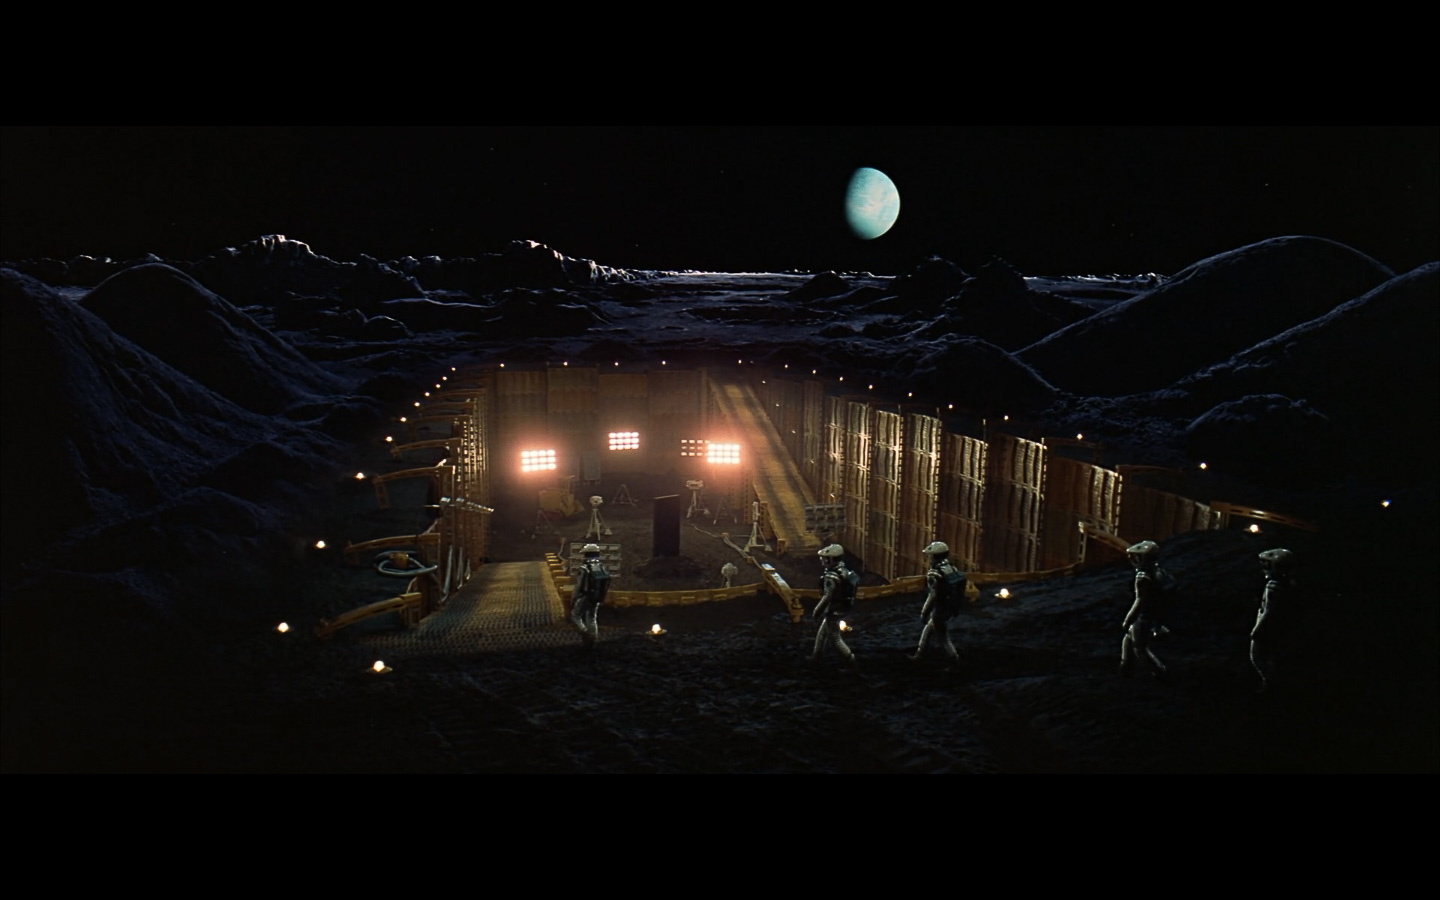 scene on the moon obelisk - space odyssey-4